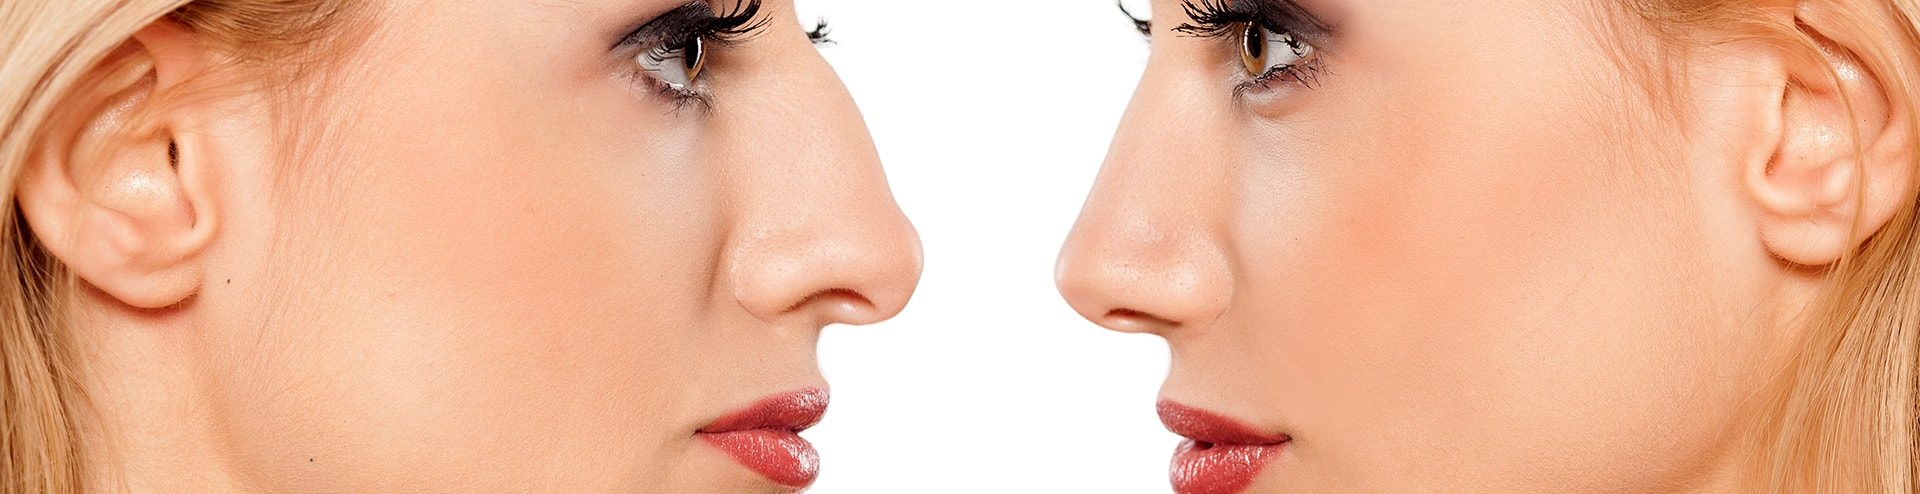 Facial Cosmetic Procedures